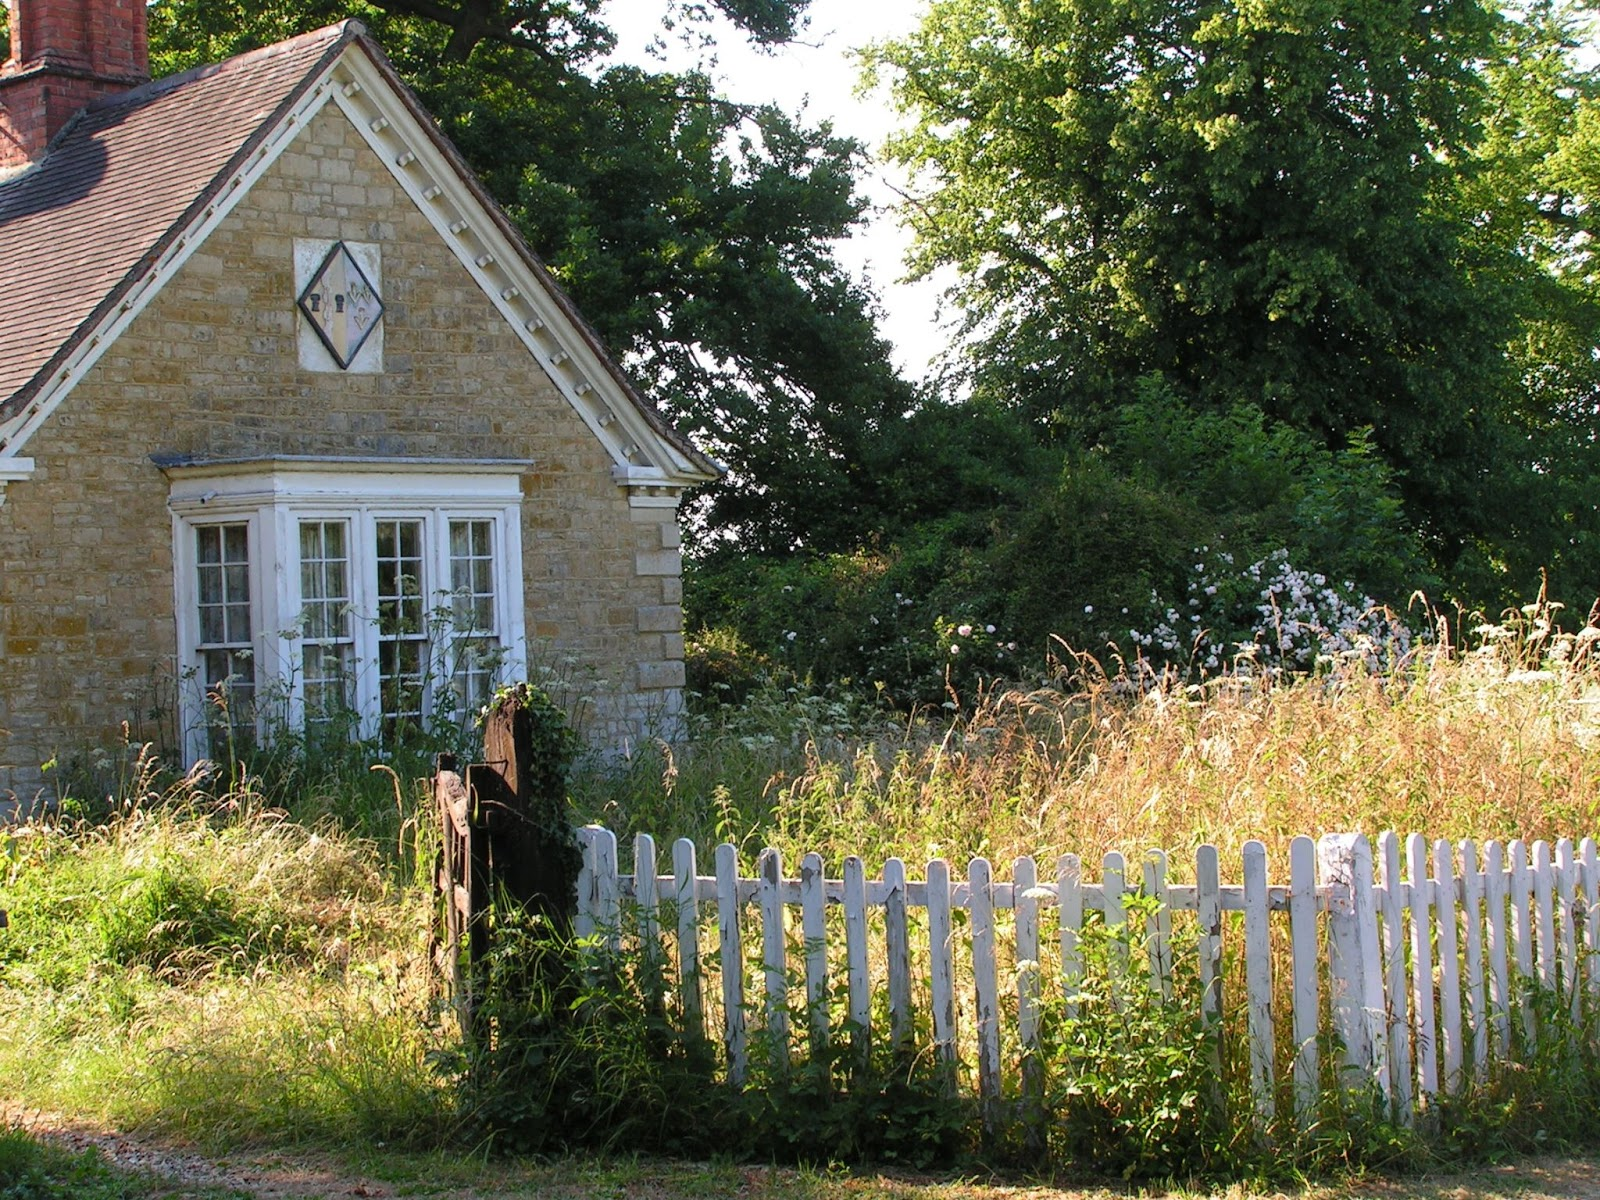 Image of a stone house with a yard full of overgrown weeds in need of Frontier's brush and land clearing services.